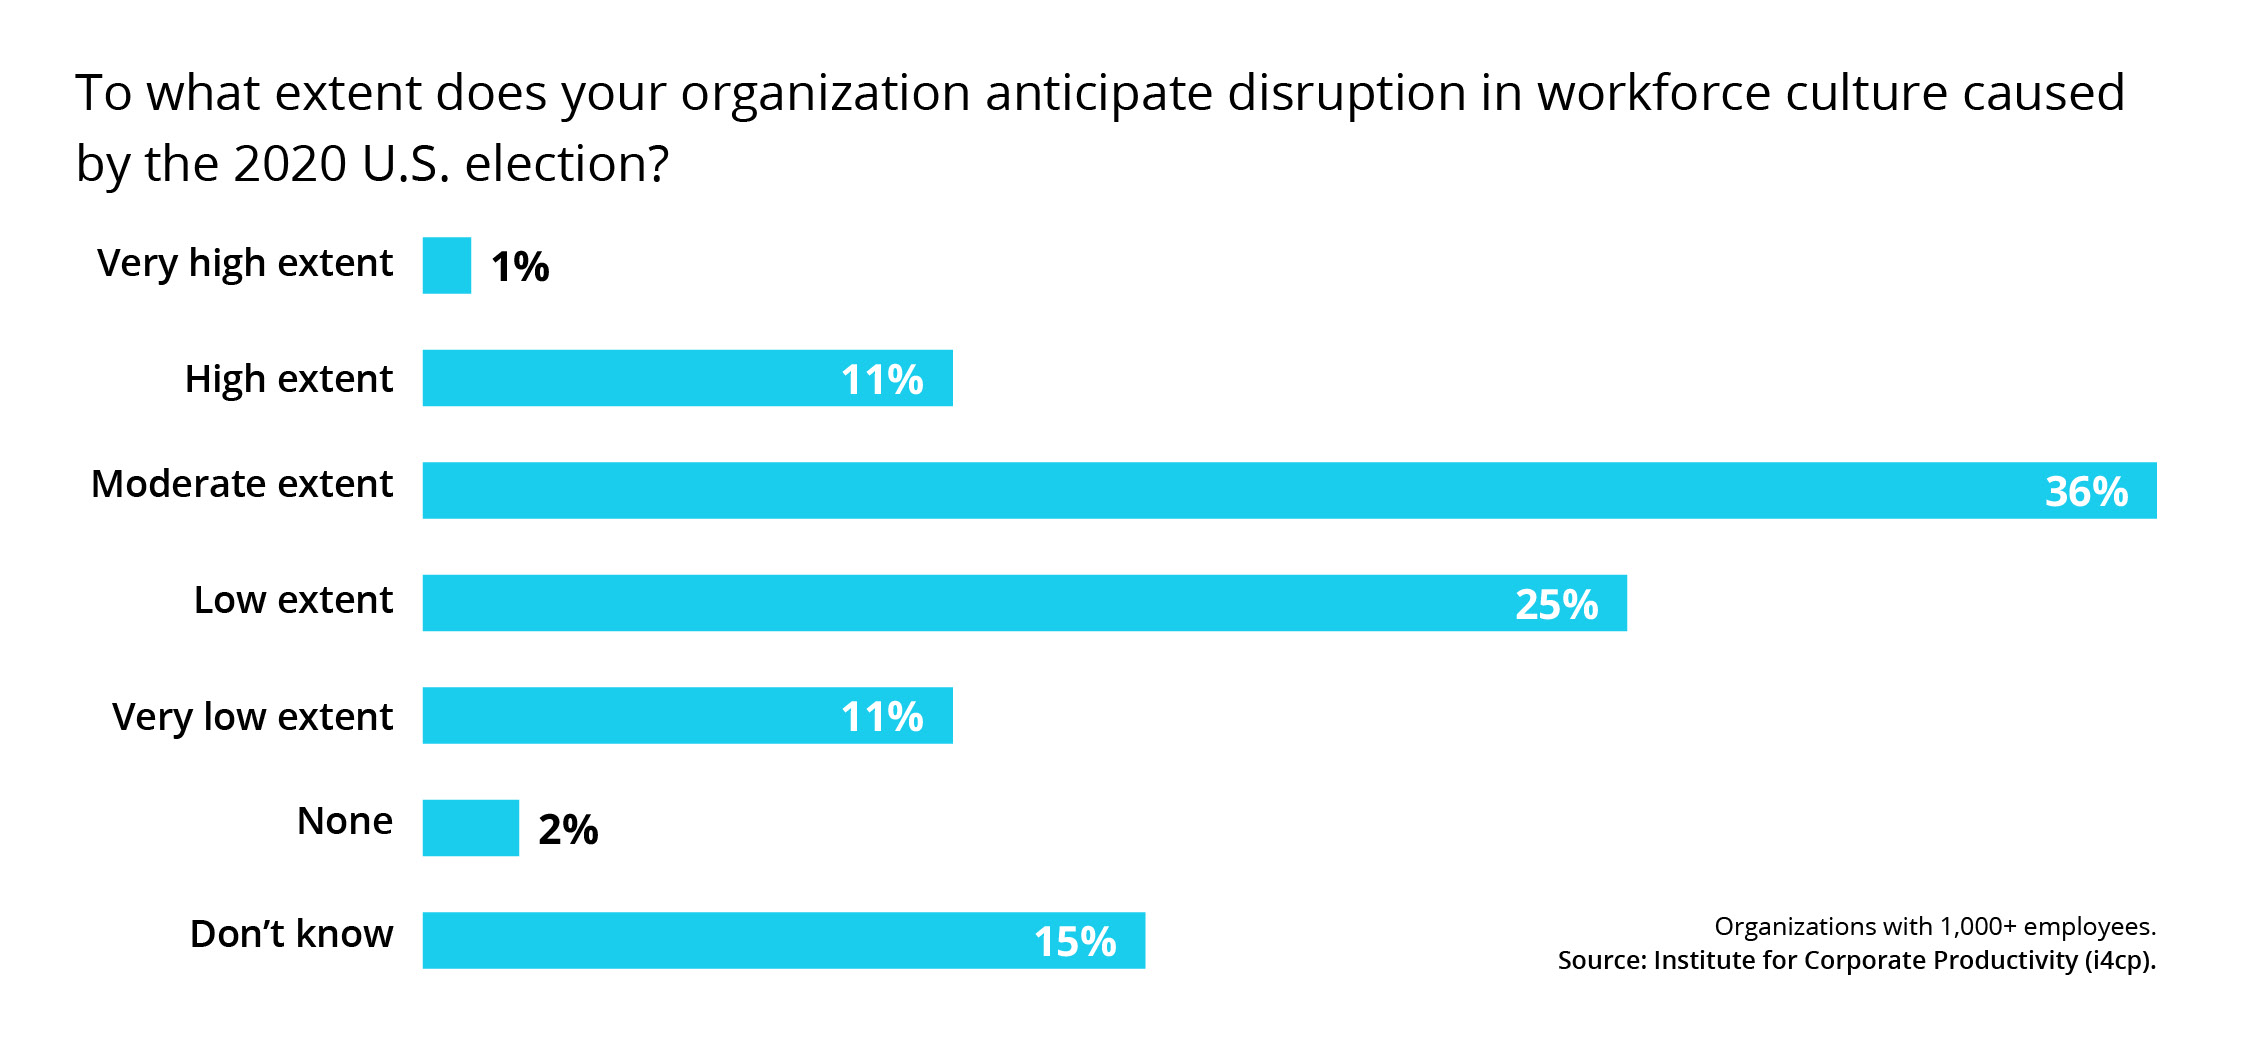 To what extent does your organization anticipate in workforce culture caused by teh 2020 election